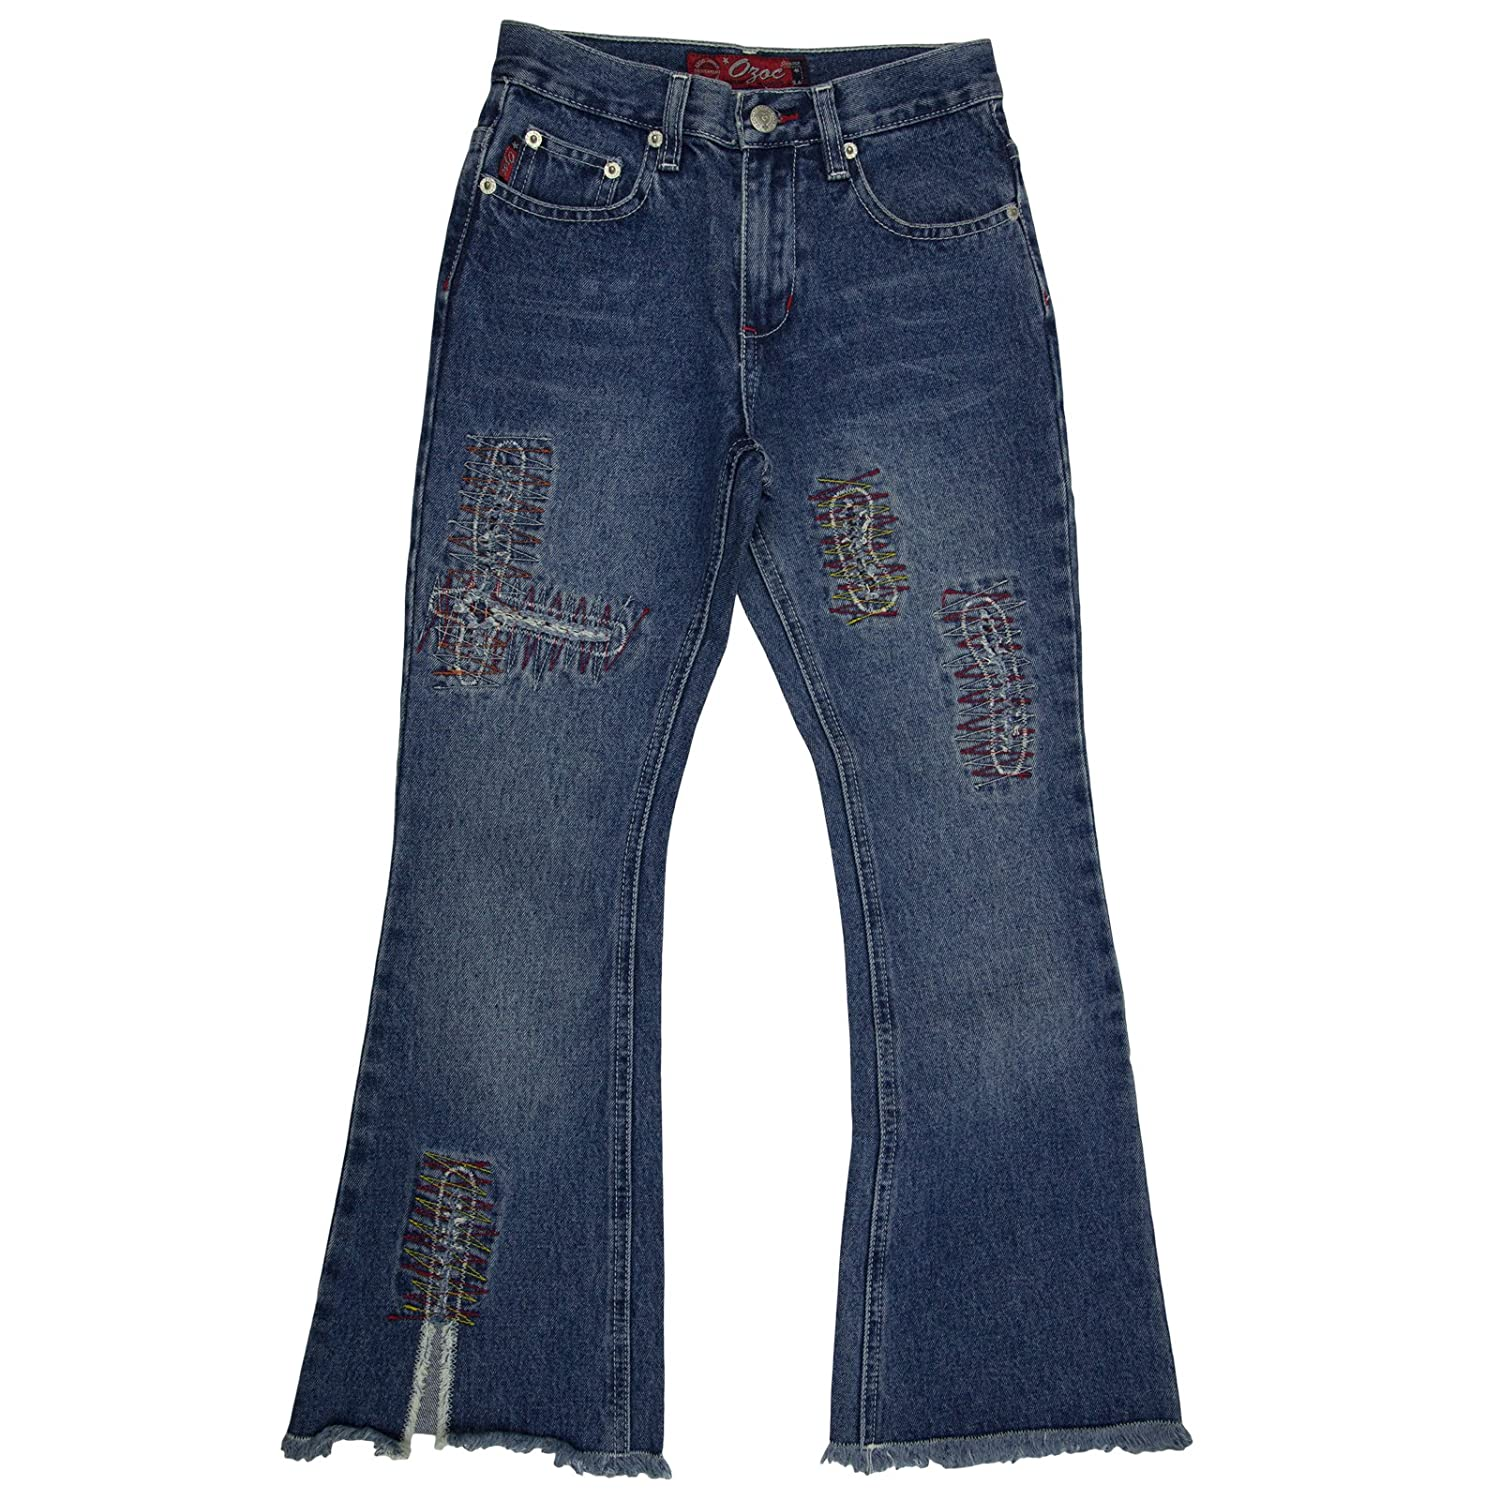 Ozoc Girls 100% Cotton Blue Jeans with Stylish Embroidered Accents